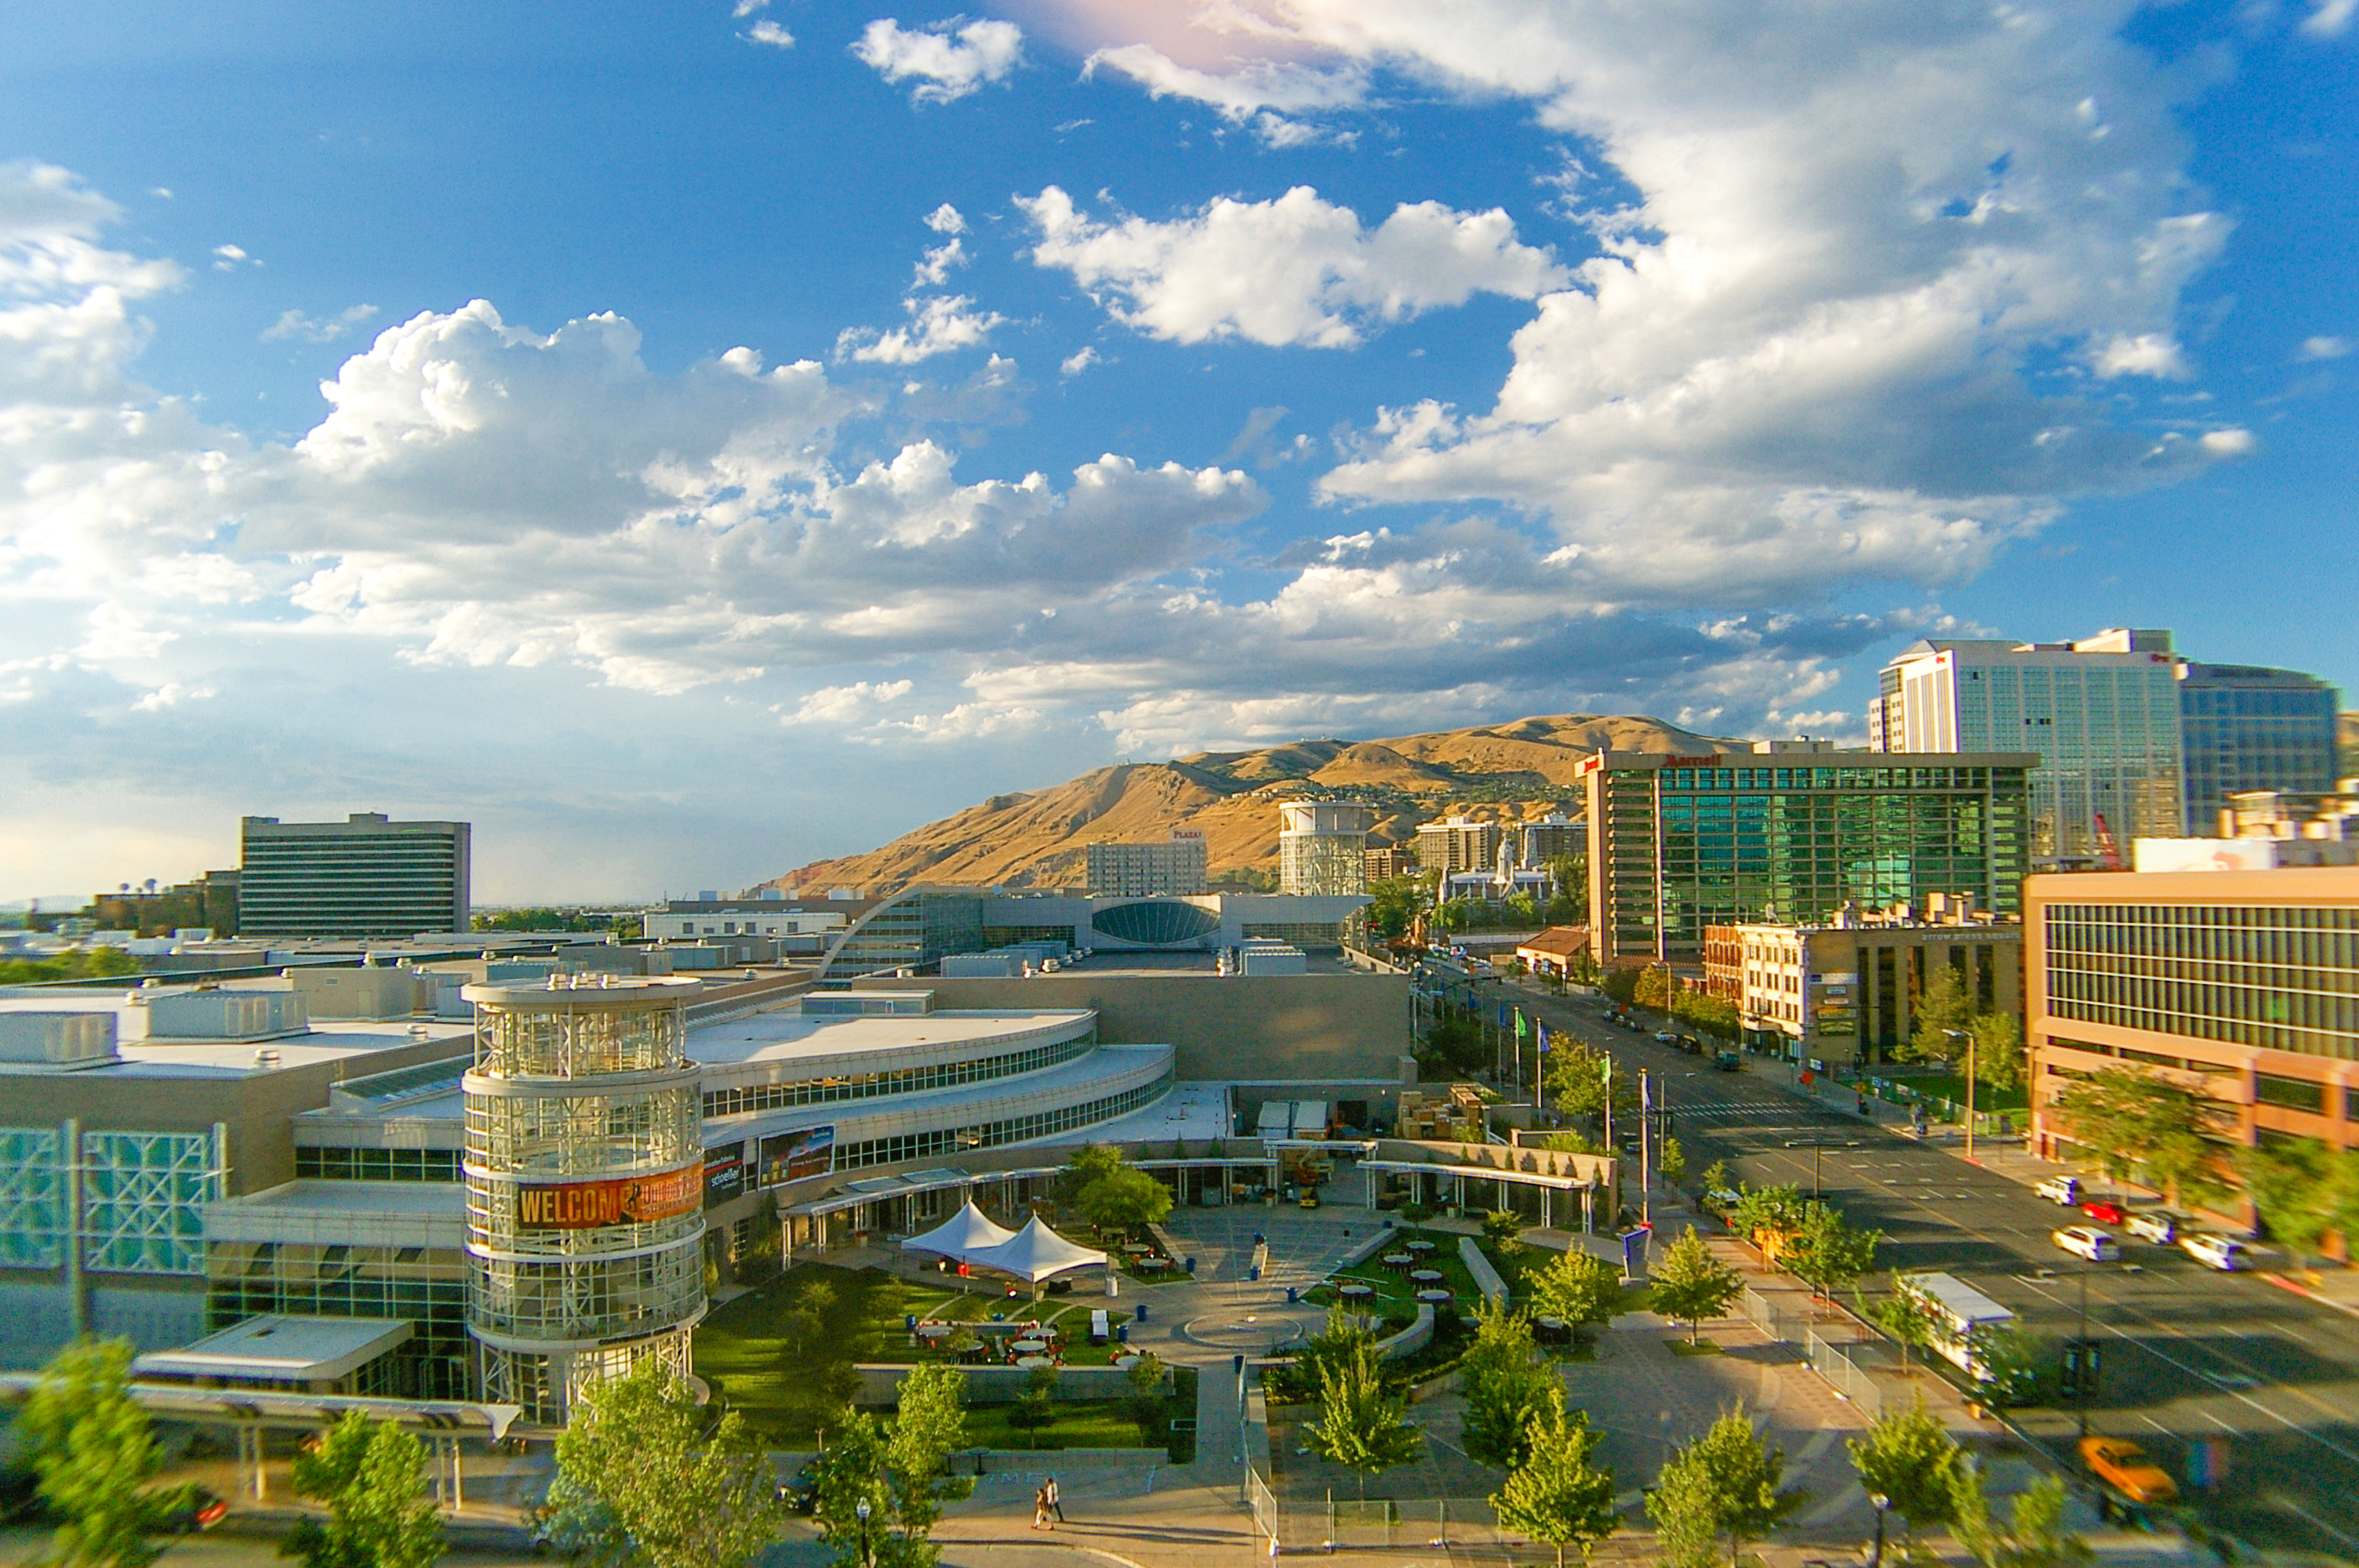 salt lake city Salt lake city is the capital and the most populous municipality of the us state  of utah  salt lake city has since developed a strong outdoor recreation tourist  industry based primarily on skiing, and hosted the 2002 winter olympics it is the .